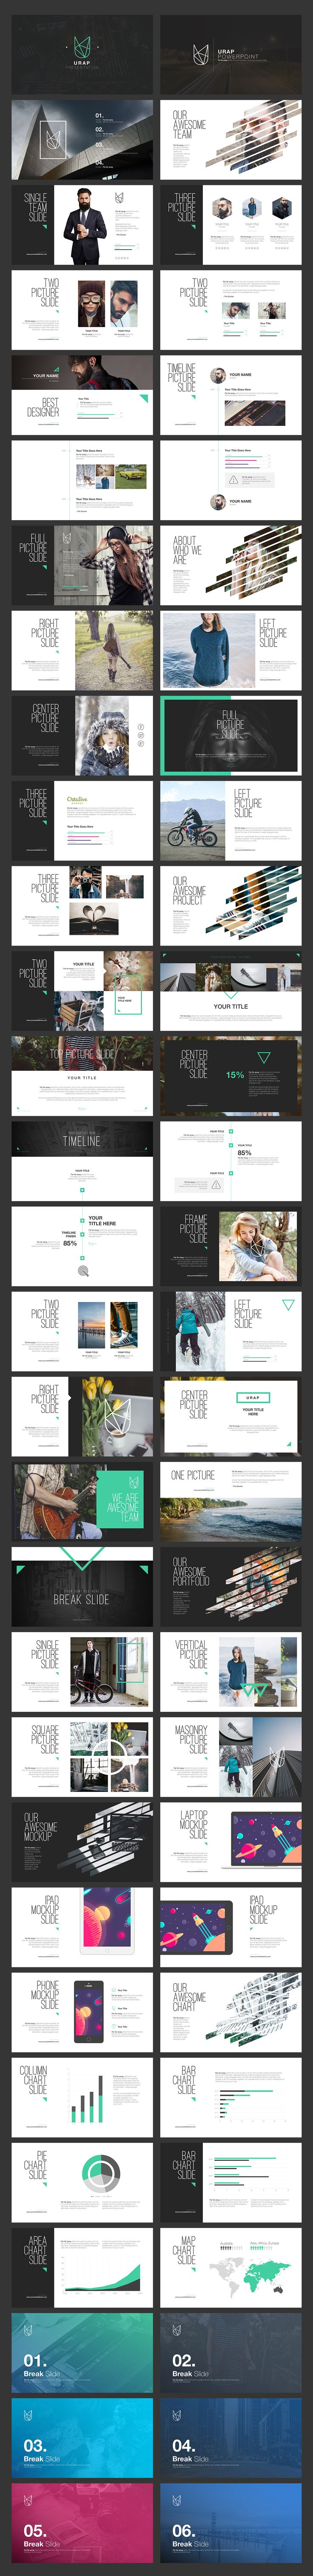 URAP PowerPoint Template by Angkalimabelas on @creativemarket                                                                                                                                                                                 More